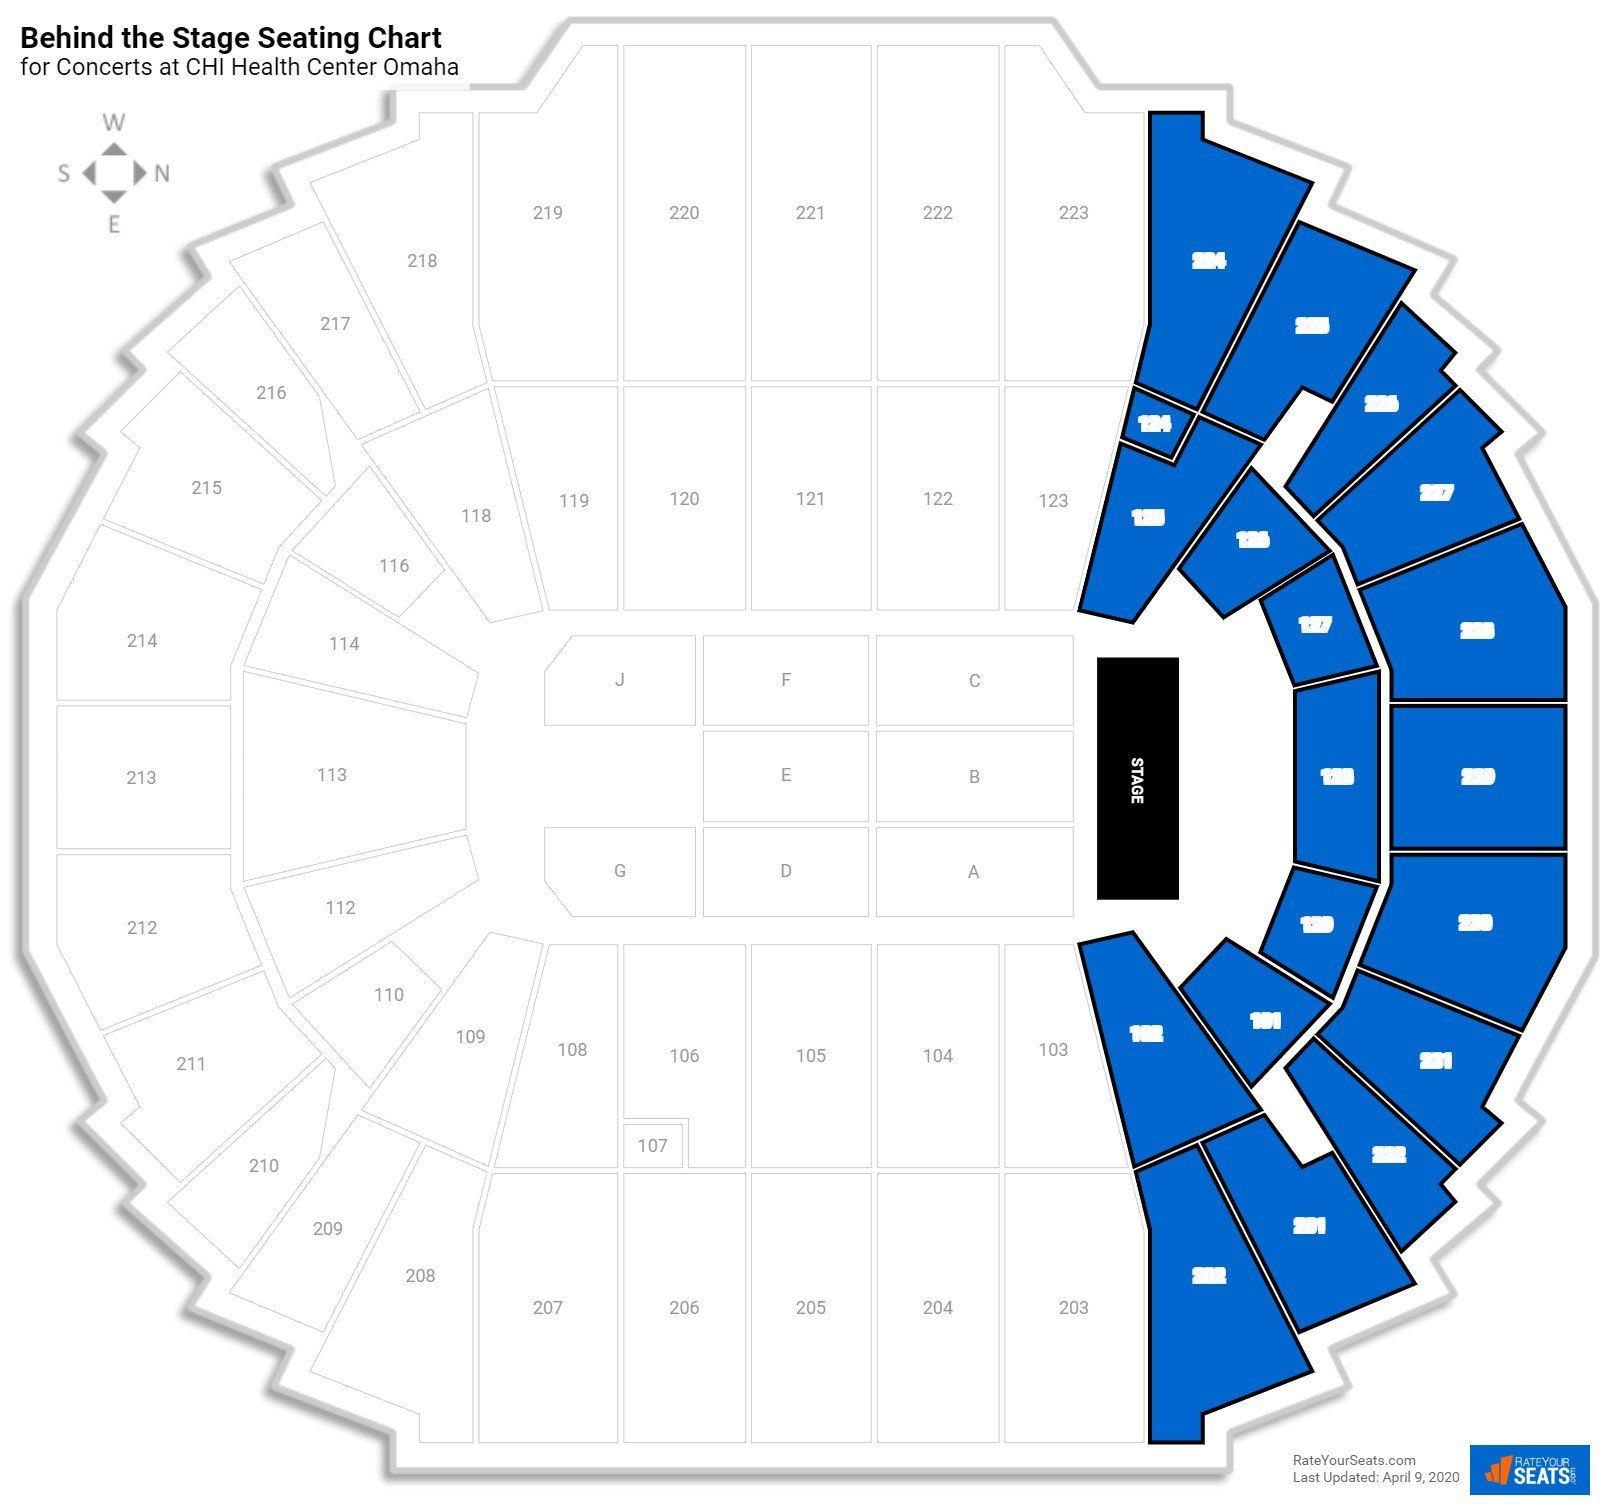 Chi Health Center Omaha Concert Seating Guide Rateyourseatscom